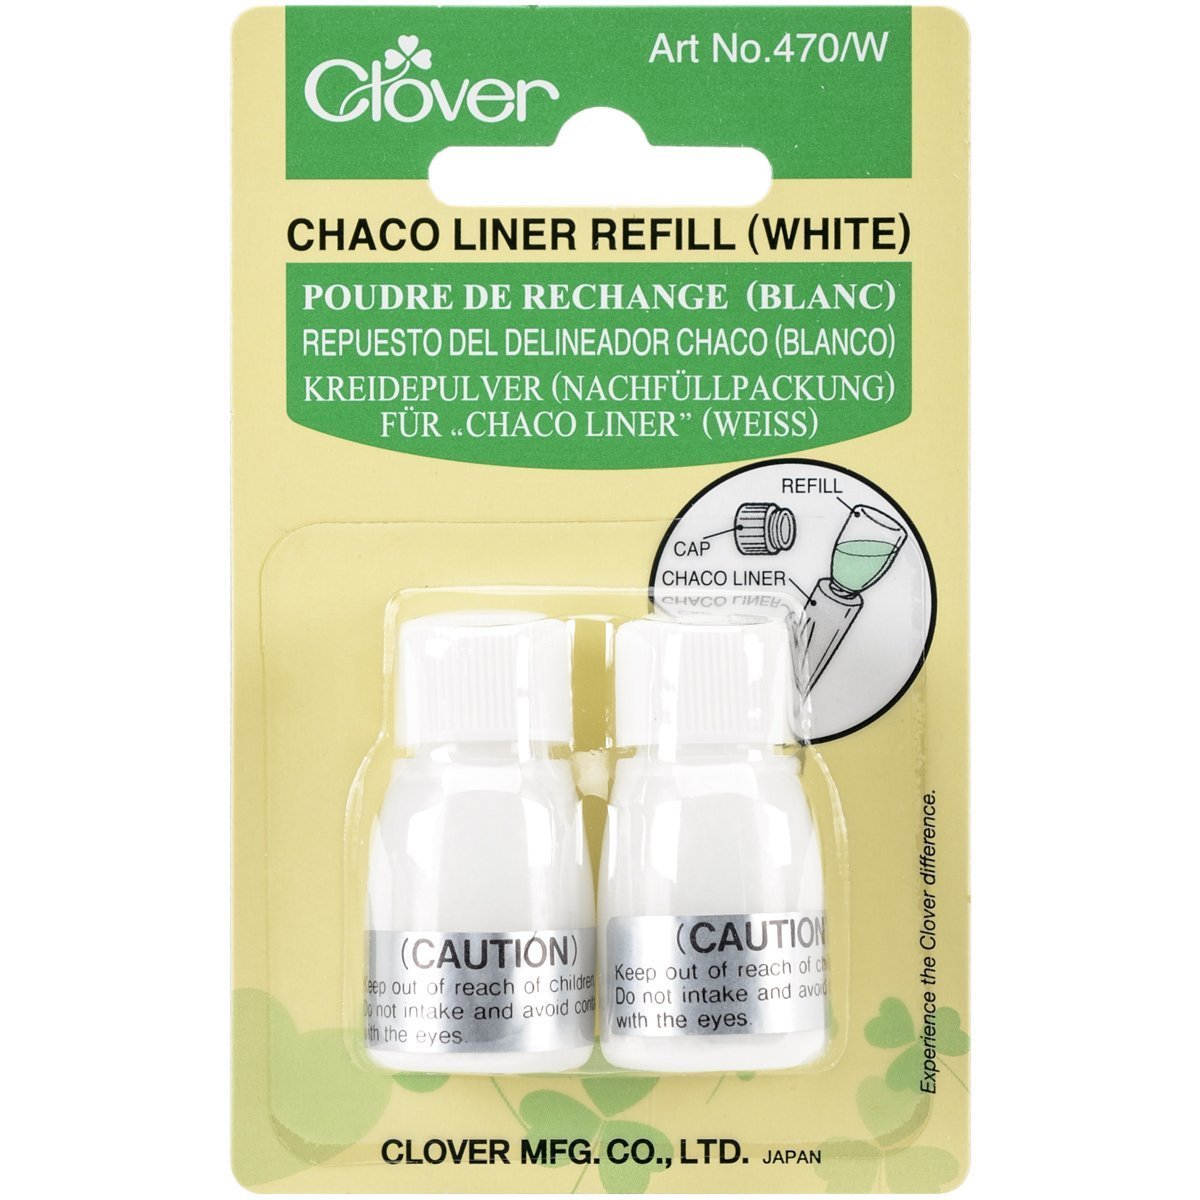 CHALK CHACO LINER REFILL WHT